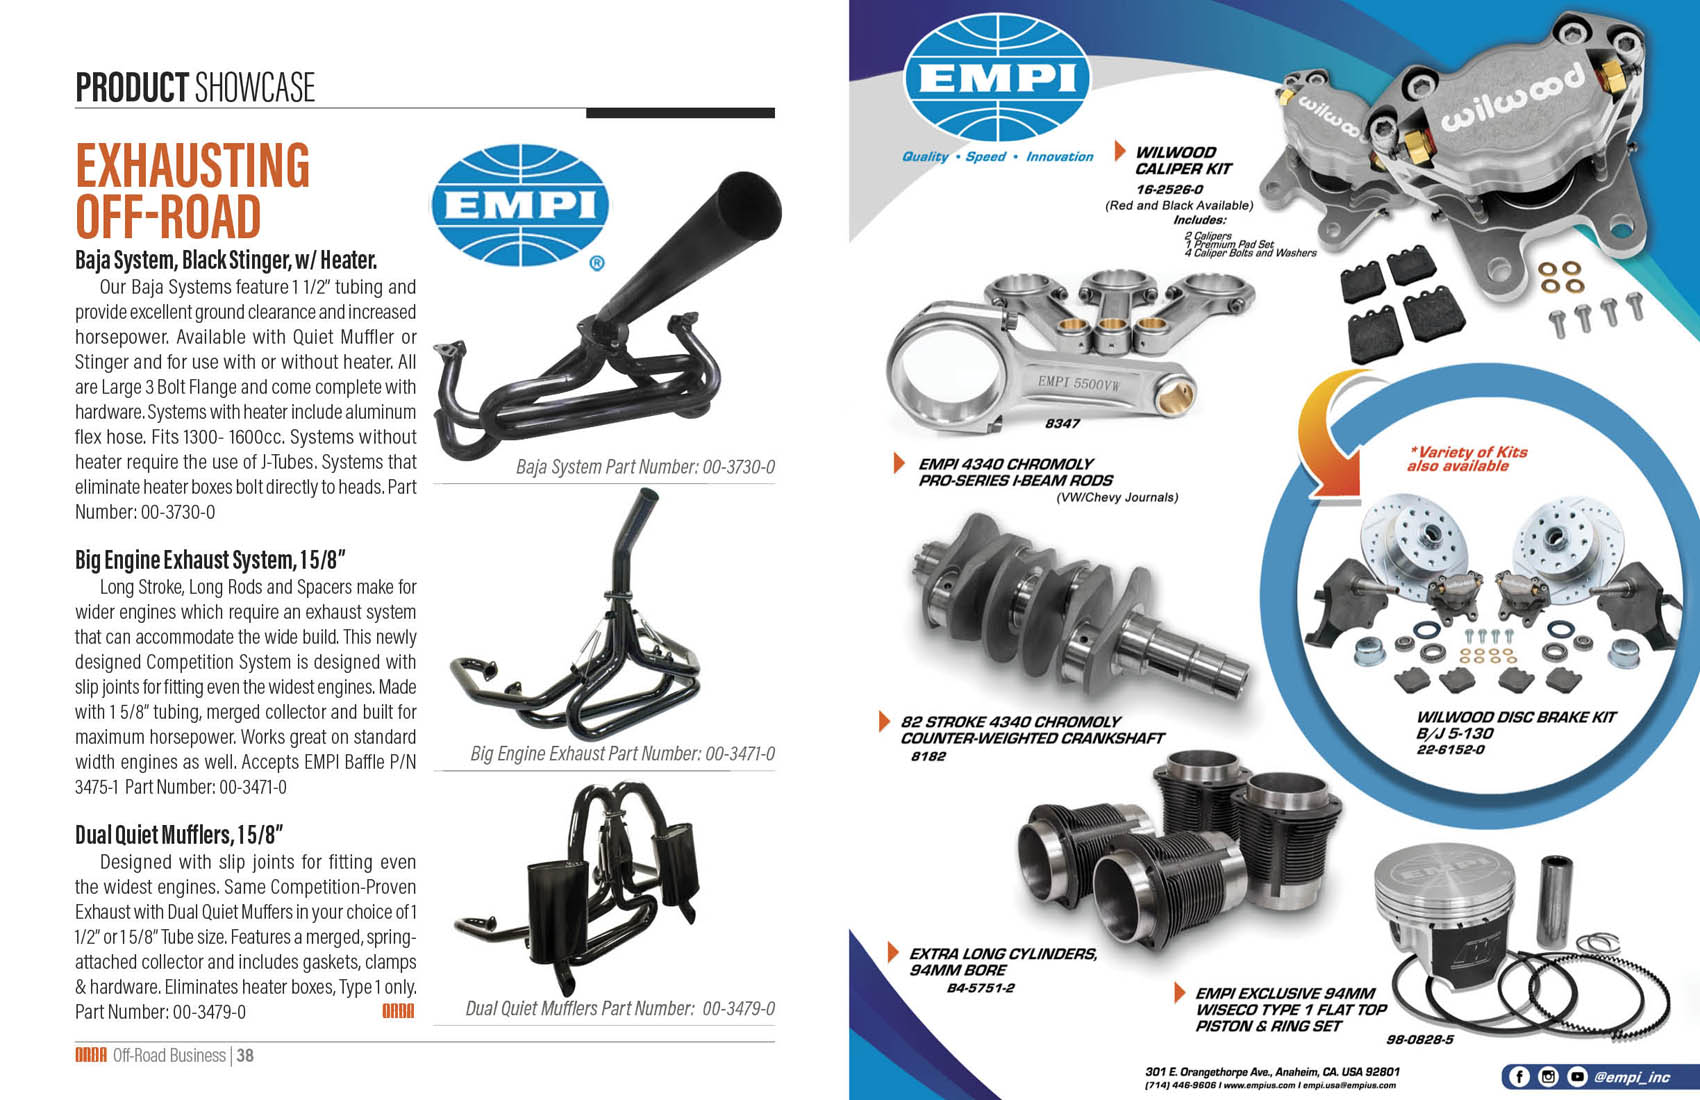 Product Showcase - EMPI